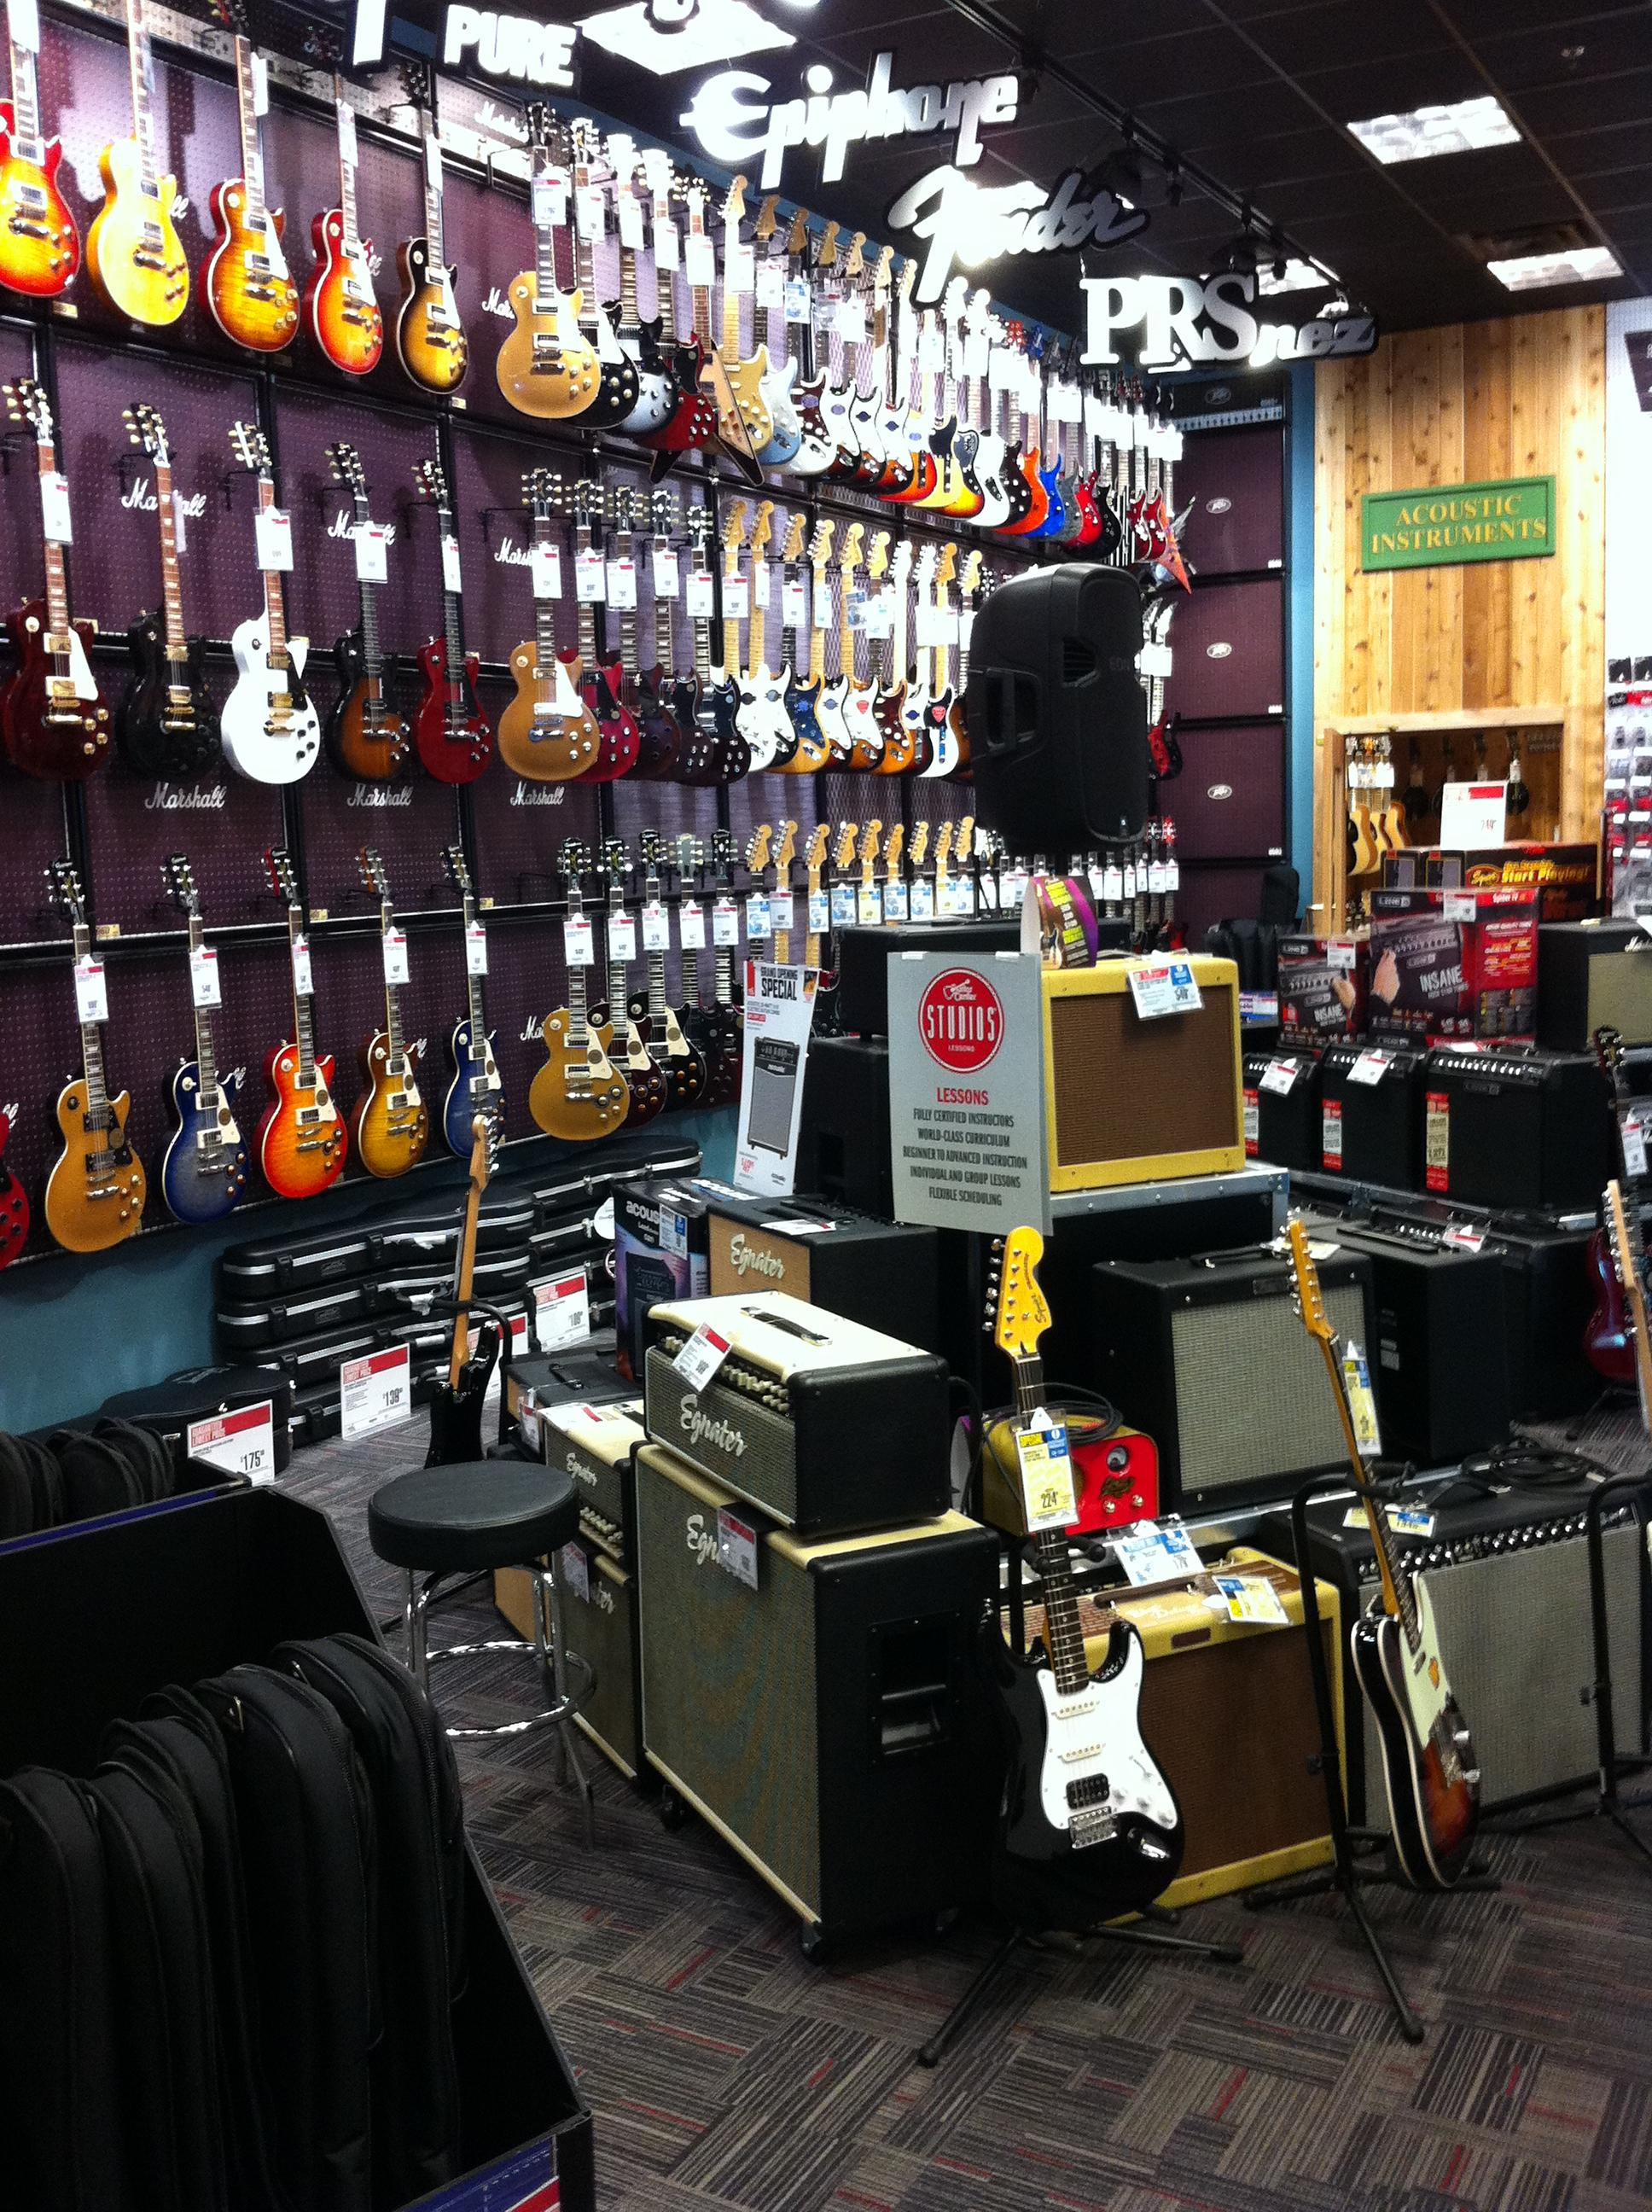 guitar center coupons near me in fayetteville 8coupons. Black Bedroom Furniture Sets. Home Design Ideas